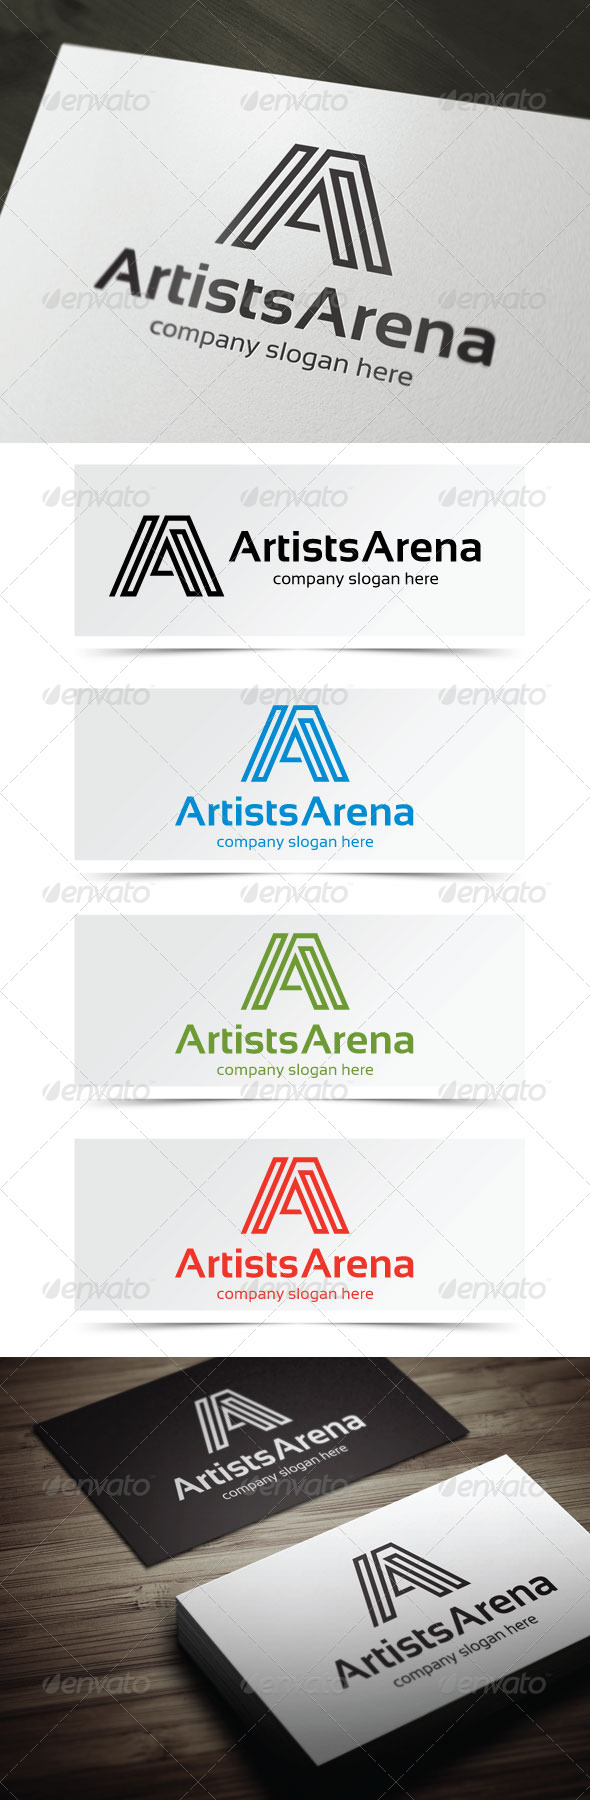 Artists Arena - Letters Logo Templates